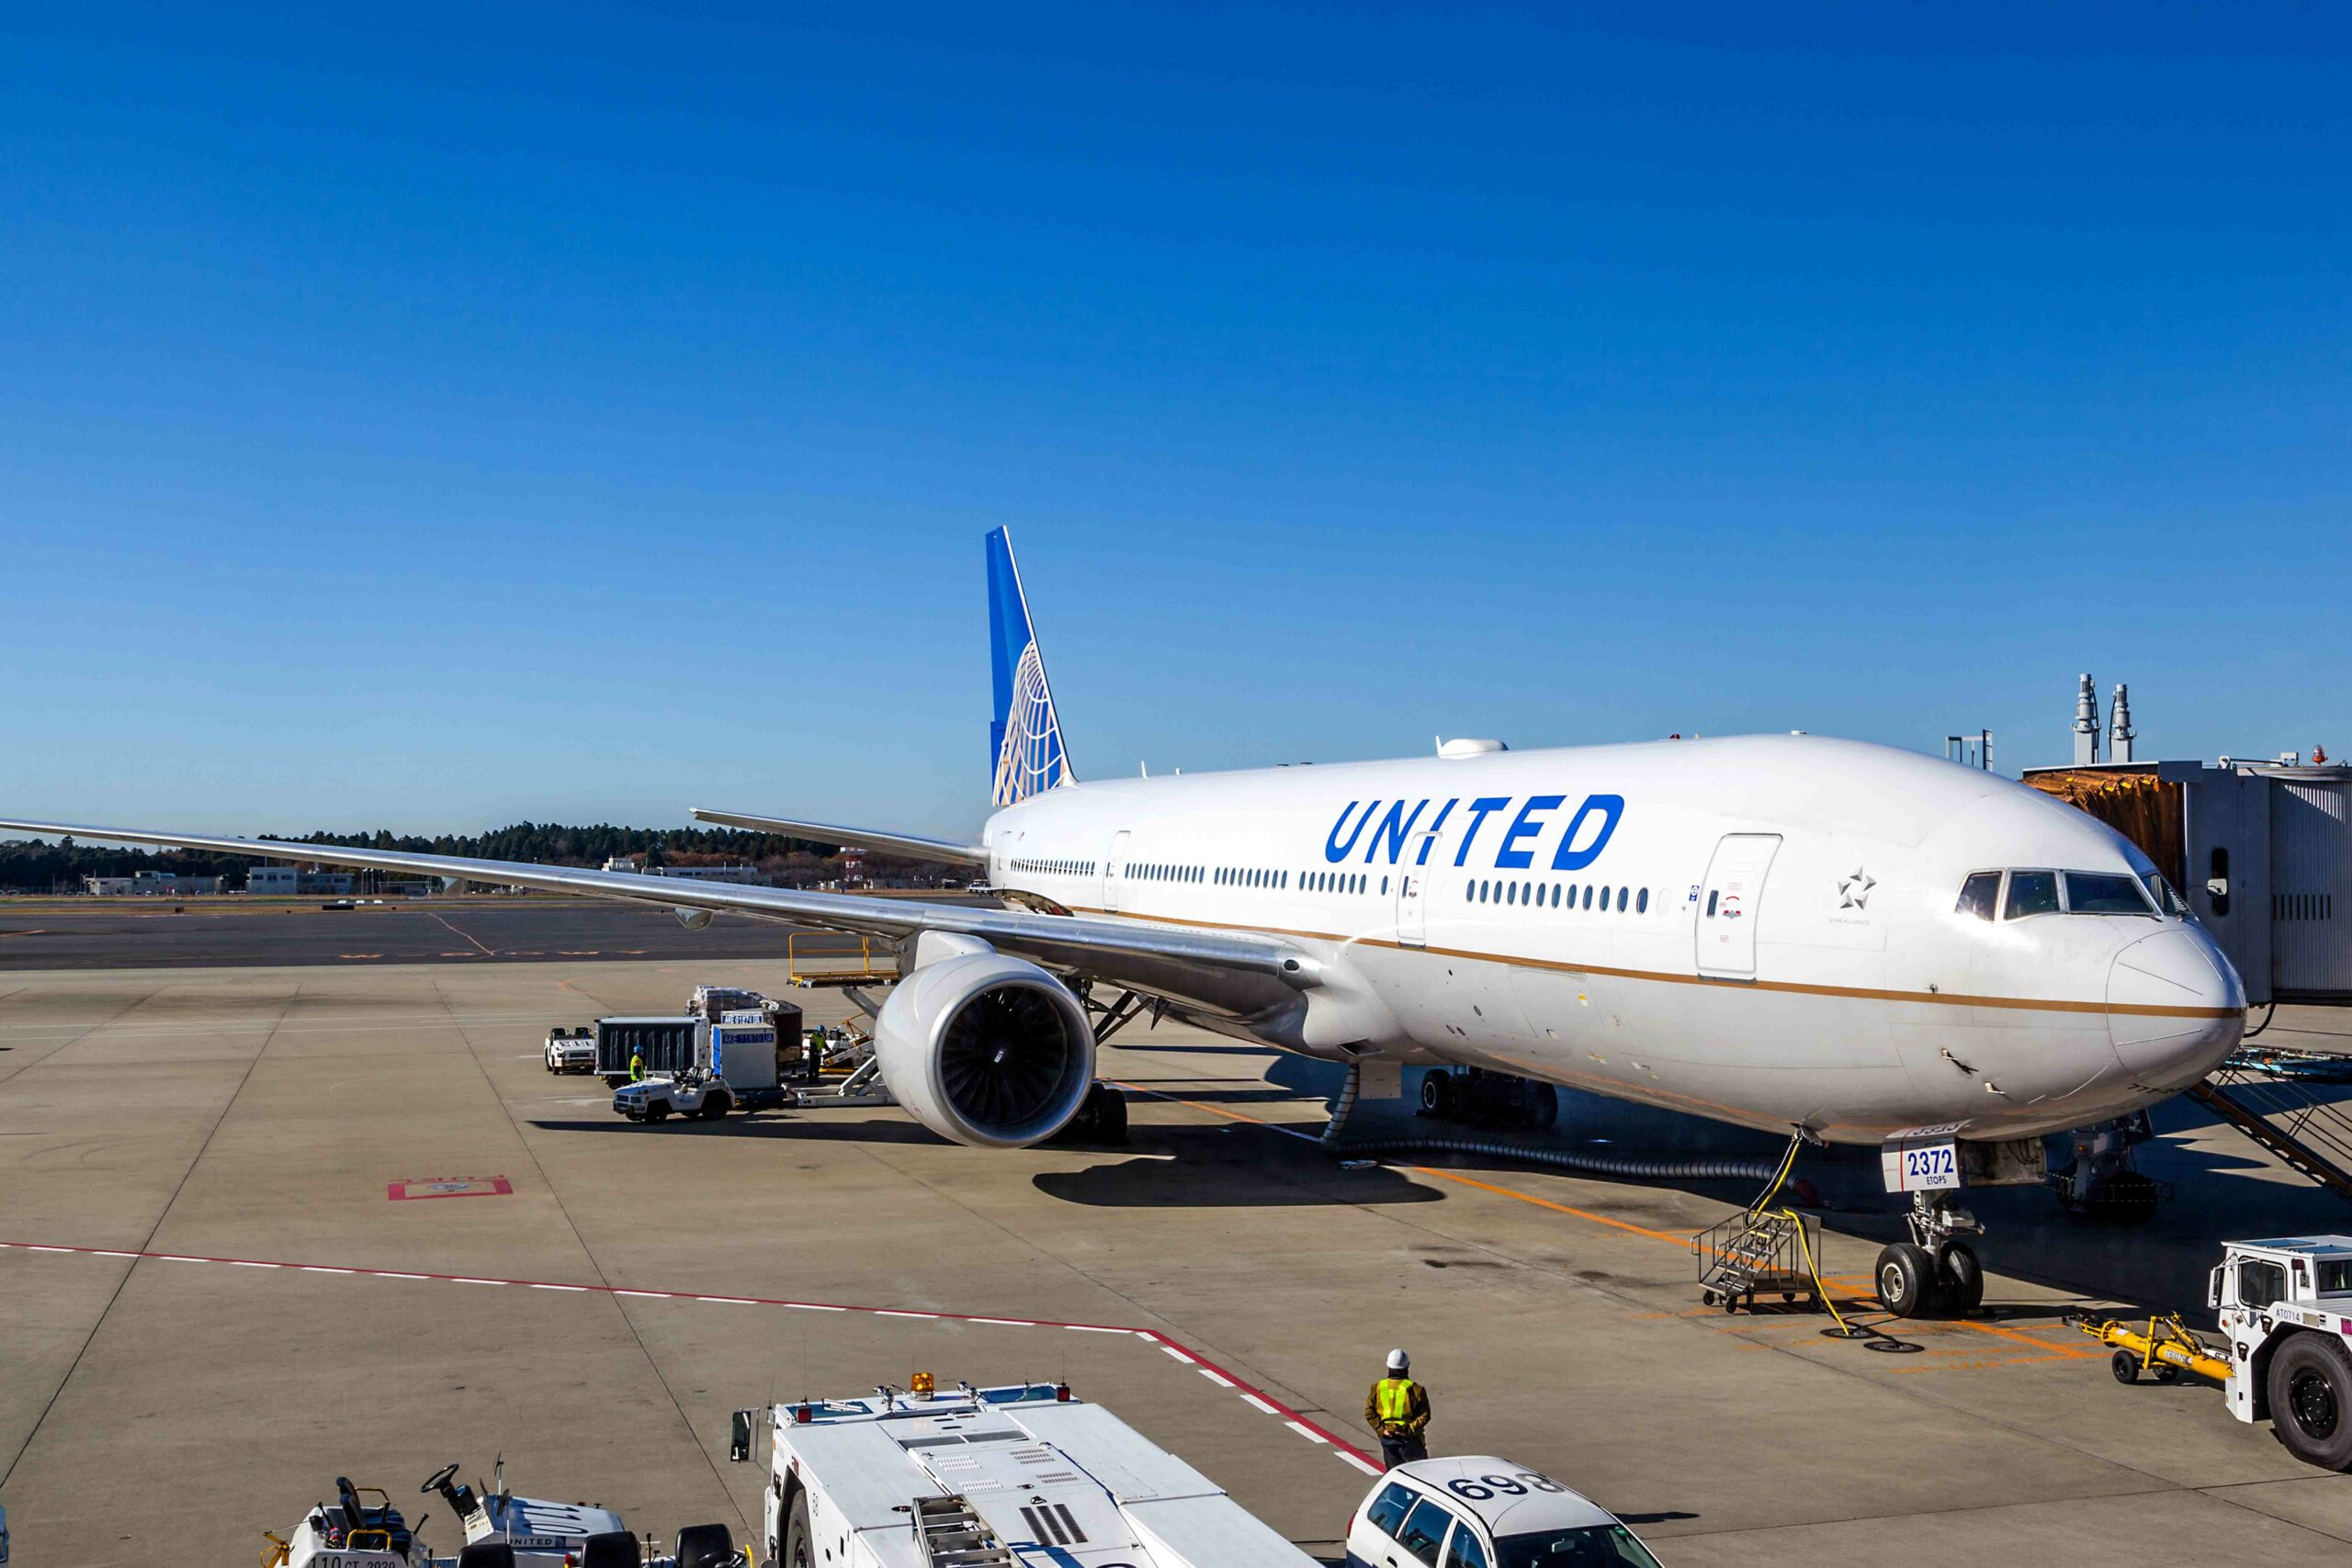 Cargo-only flights starts for United Airlines Atlas Logistic Network